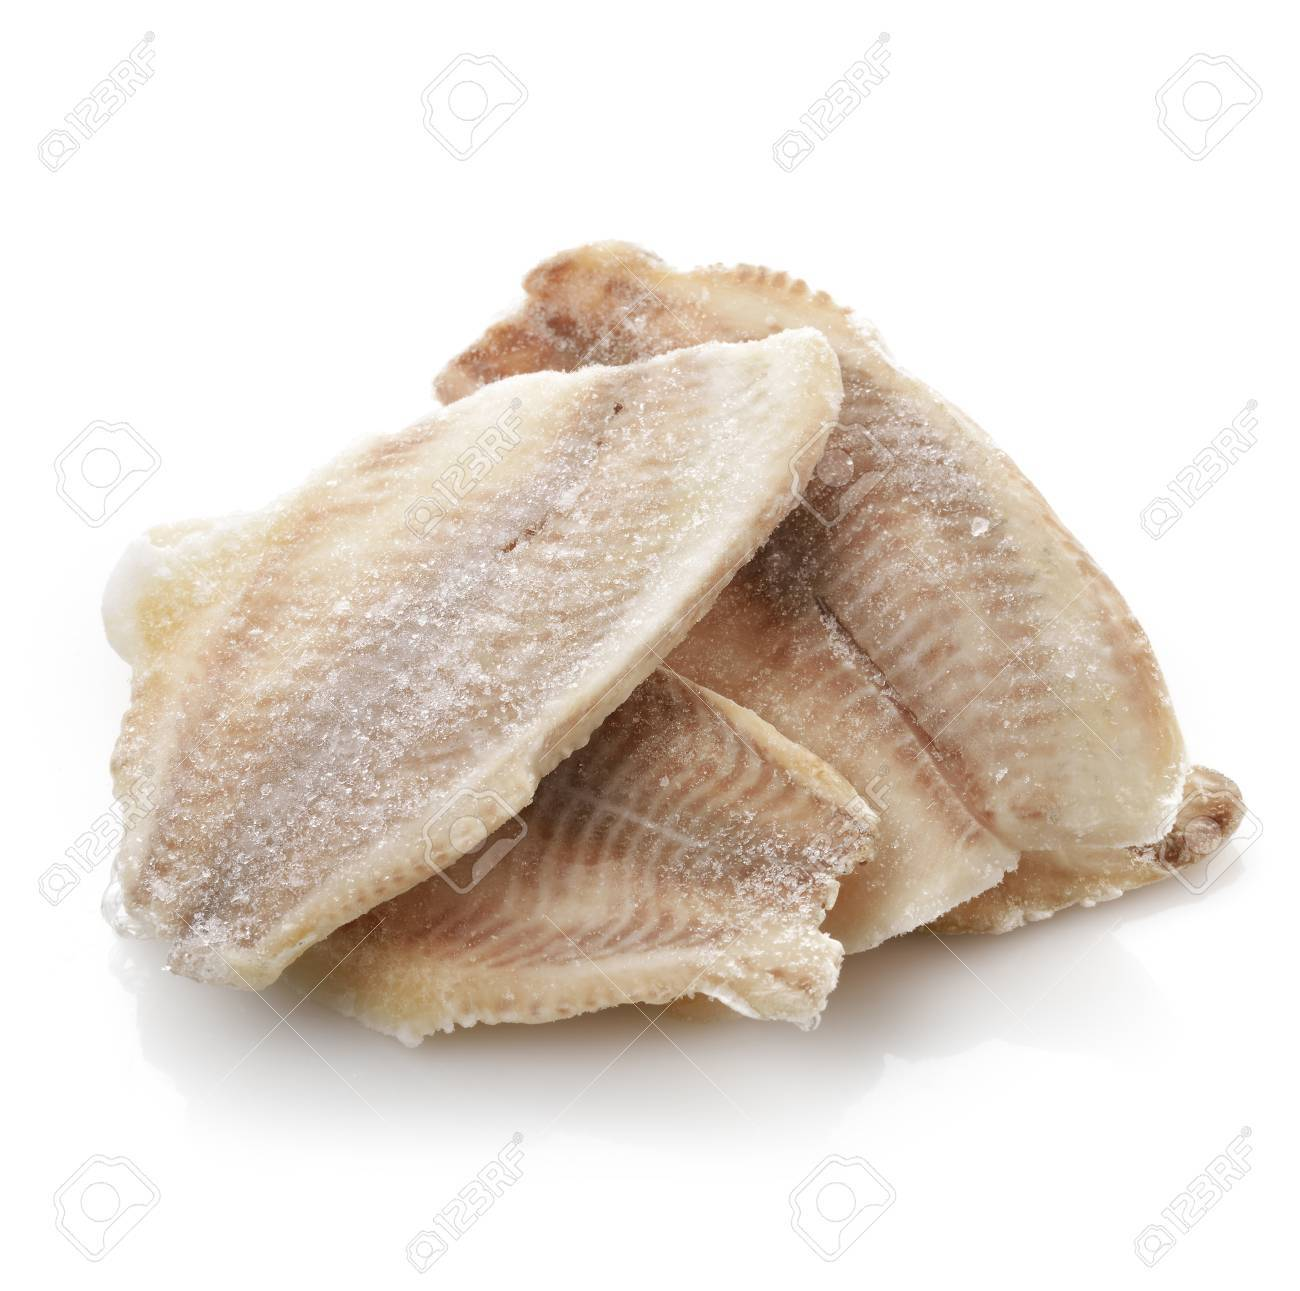 Frozen Tilapia Fillet On White Background Stock Photo Picture And Royalty Free Image Image 19329108